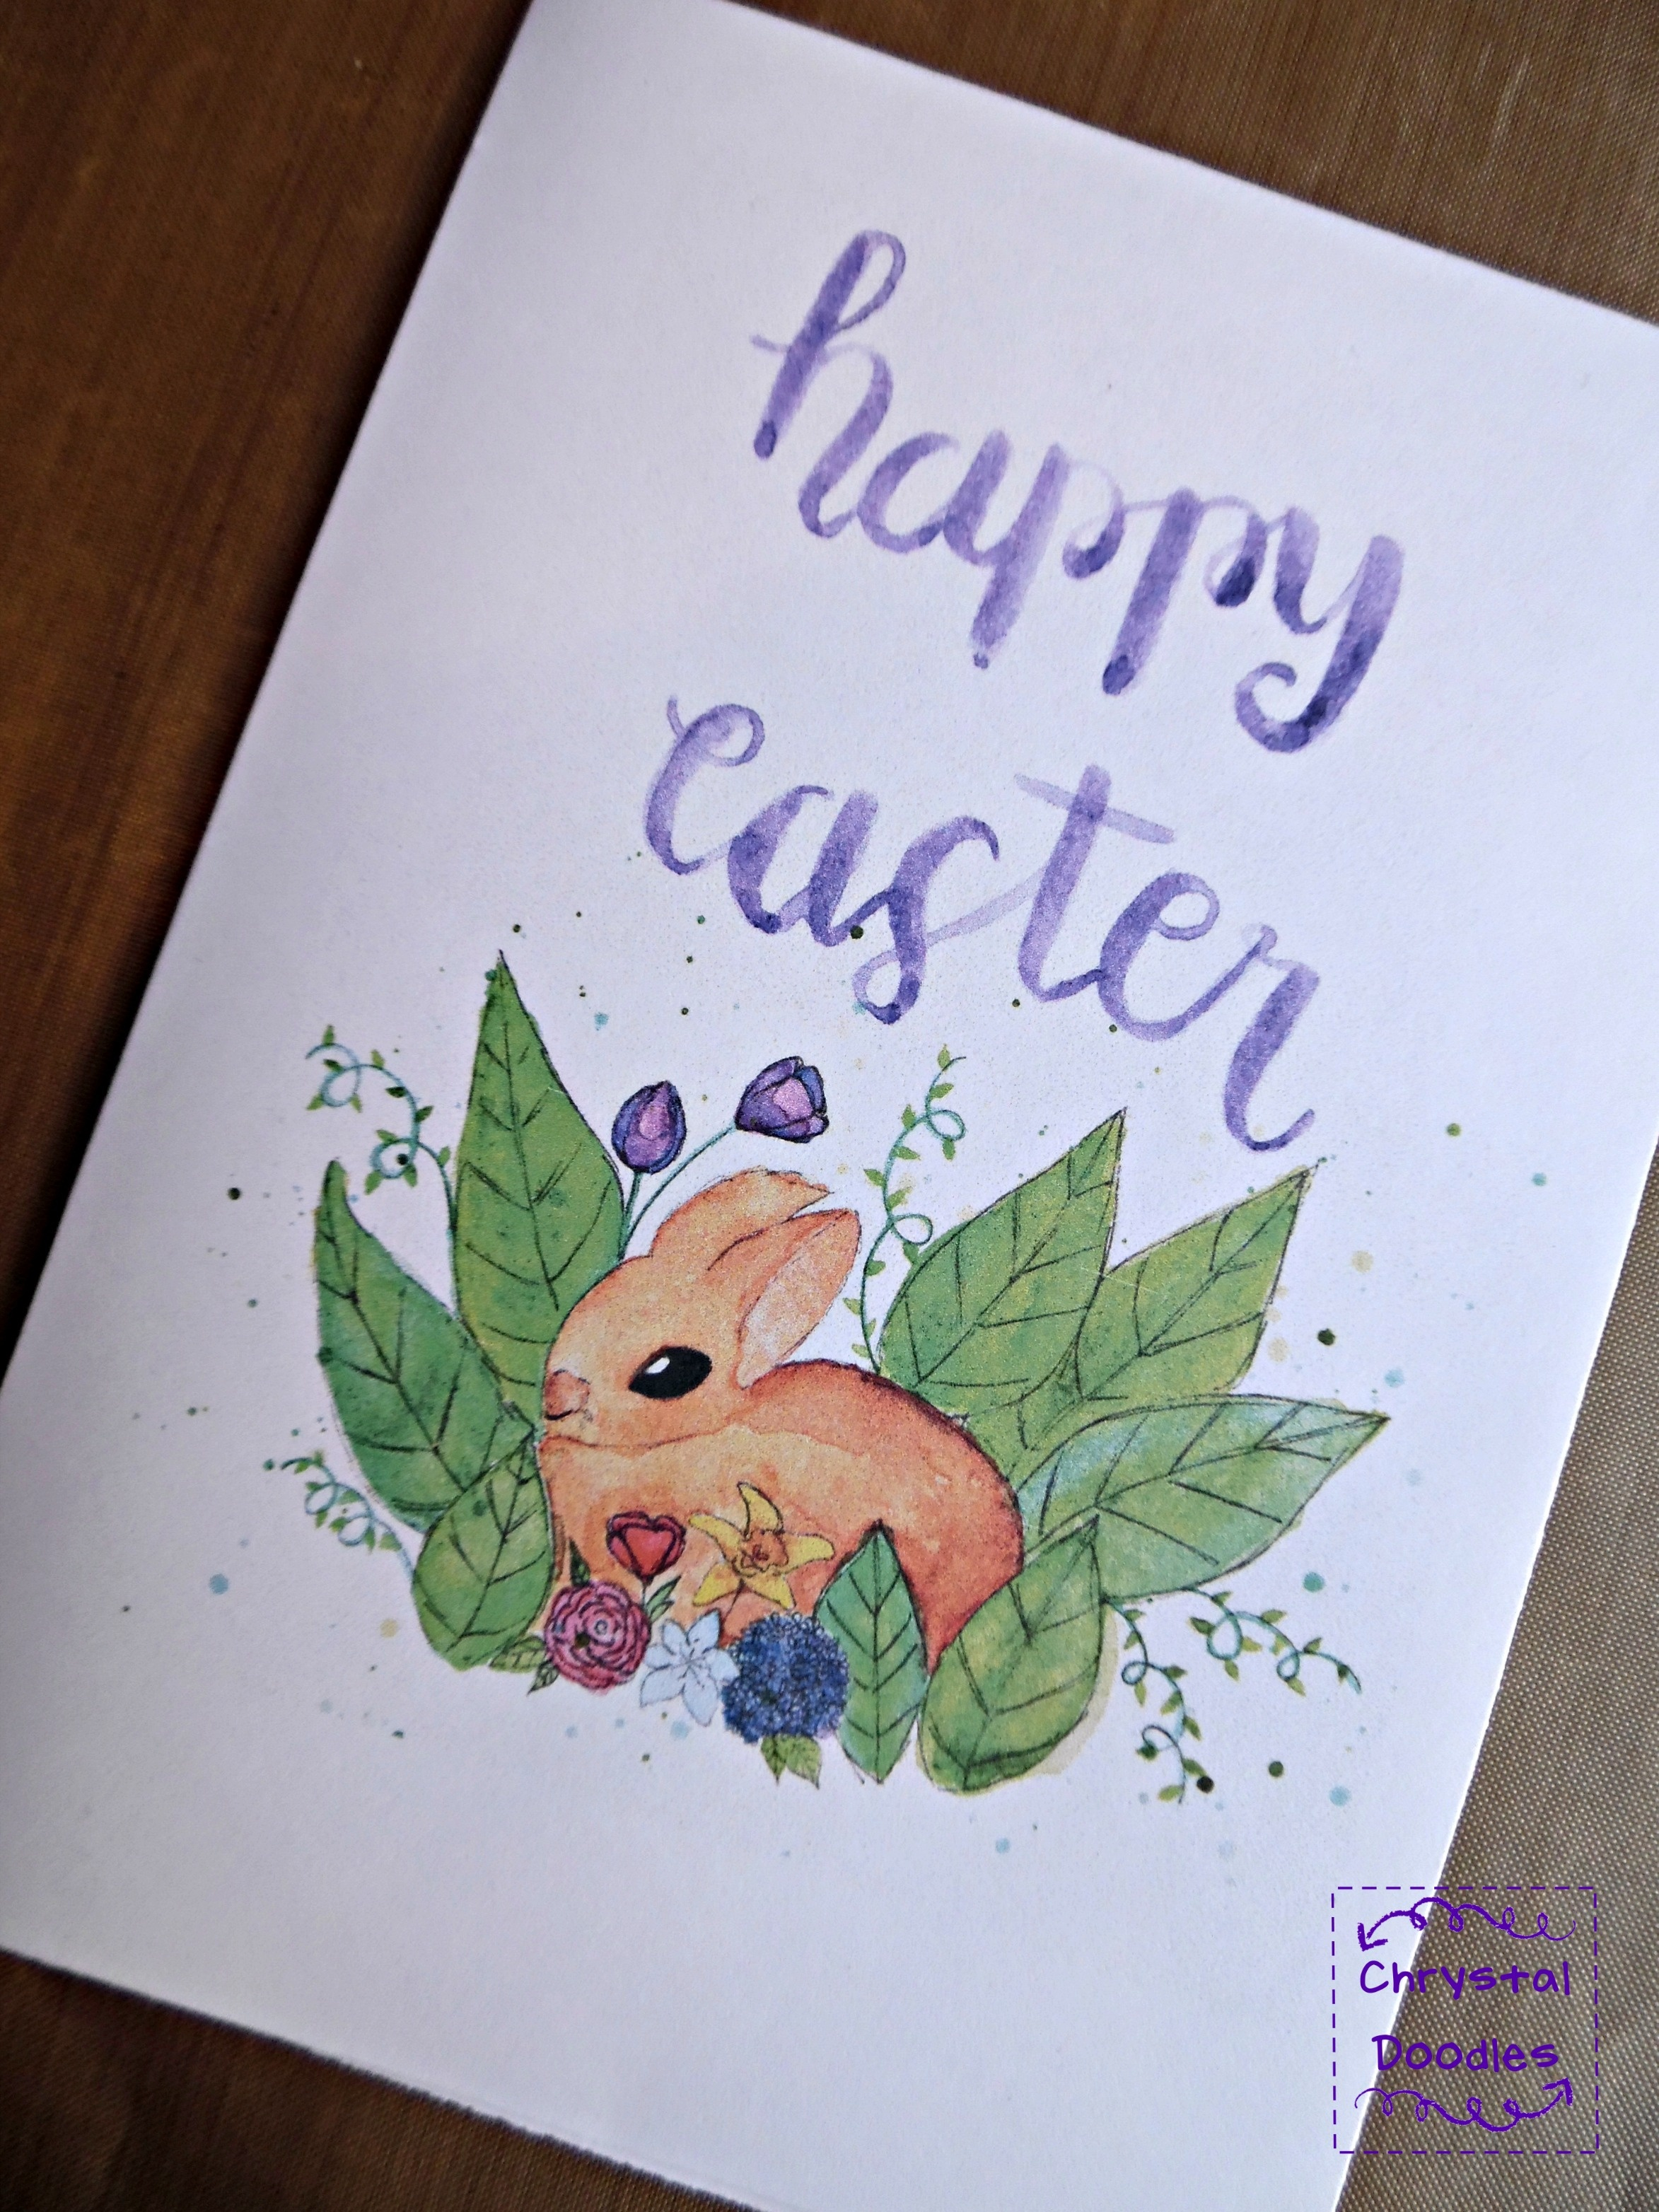 Free Printable Easter Greeting Cards – Hd Easter Images - Free Printable Easter Greeting Cards